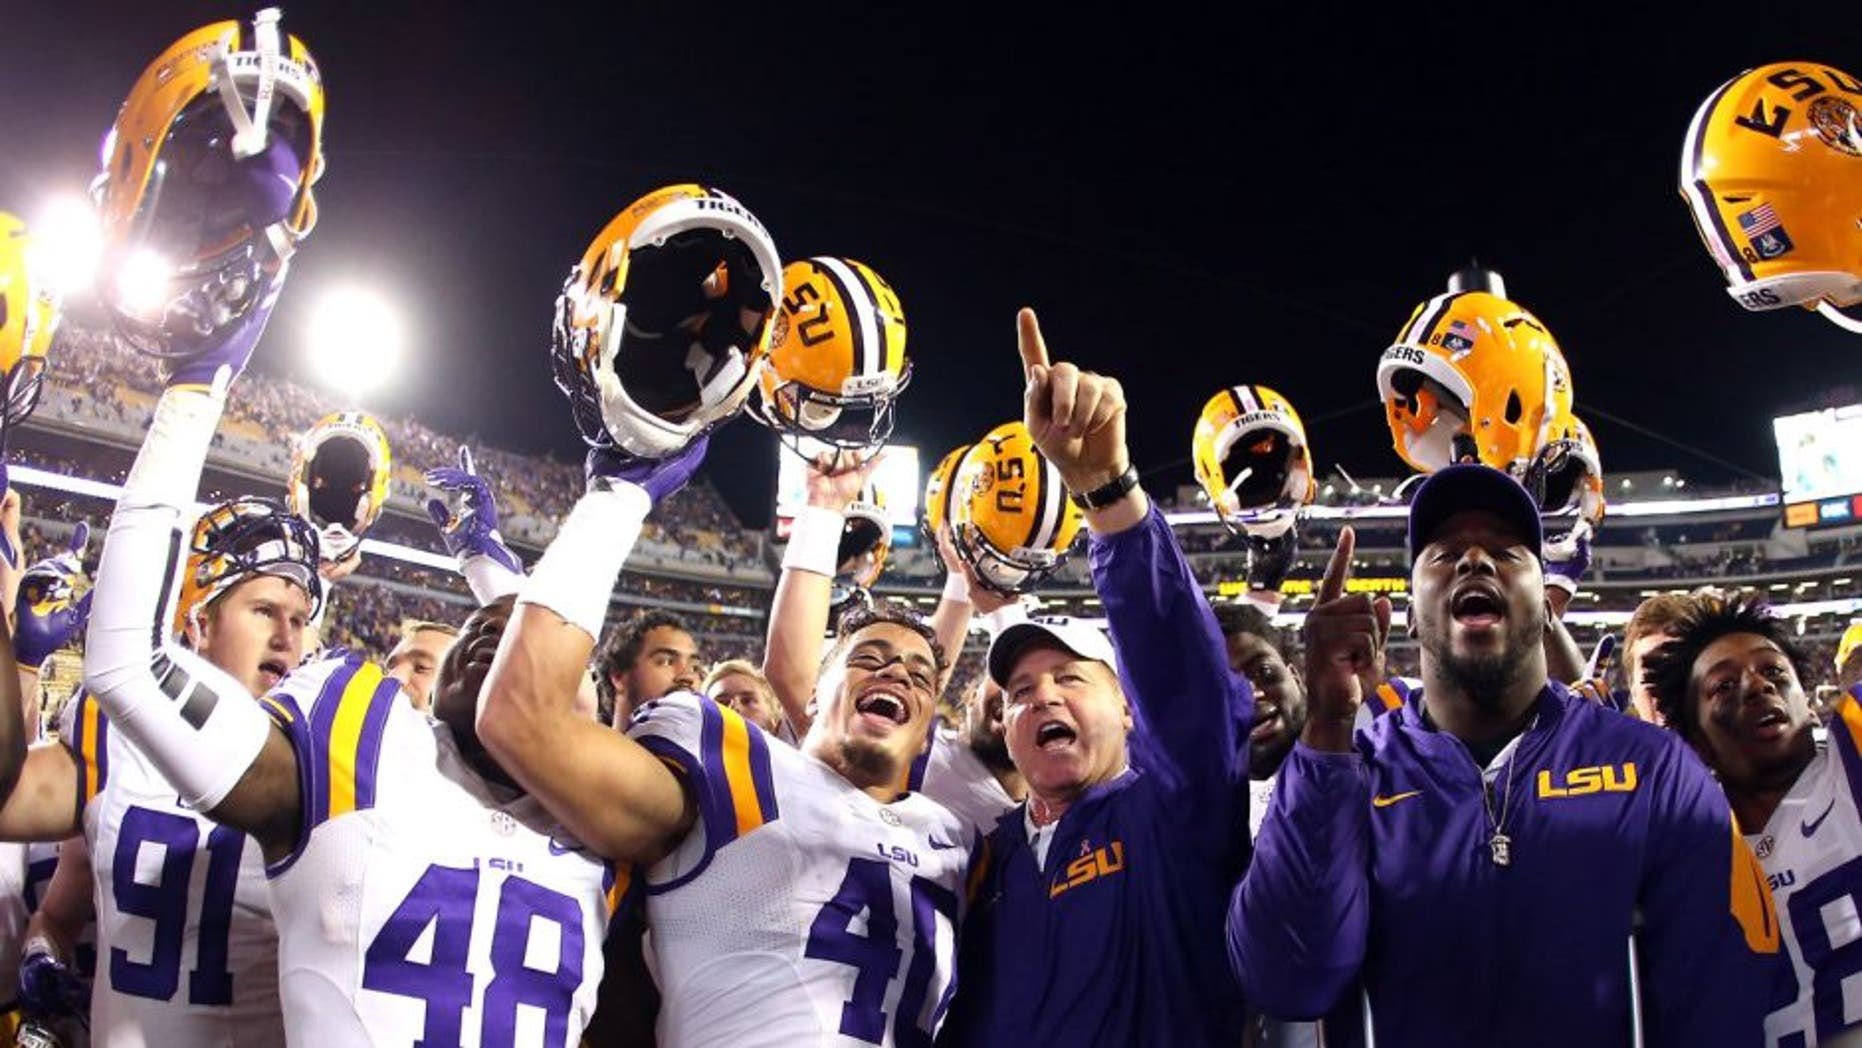 BATON ROUGE, LA - OCTOBER 17: Head coach Les Miles celebrates with the LSU Tigers after defeating the Florida Gators 35-28 at Tiger Stadium on October 17, 2015 in Baton Rouge, Louisiana. (Photo by Chris Graythen/Getty Images)